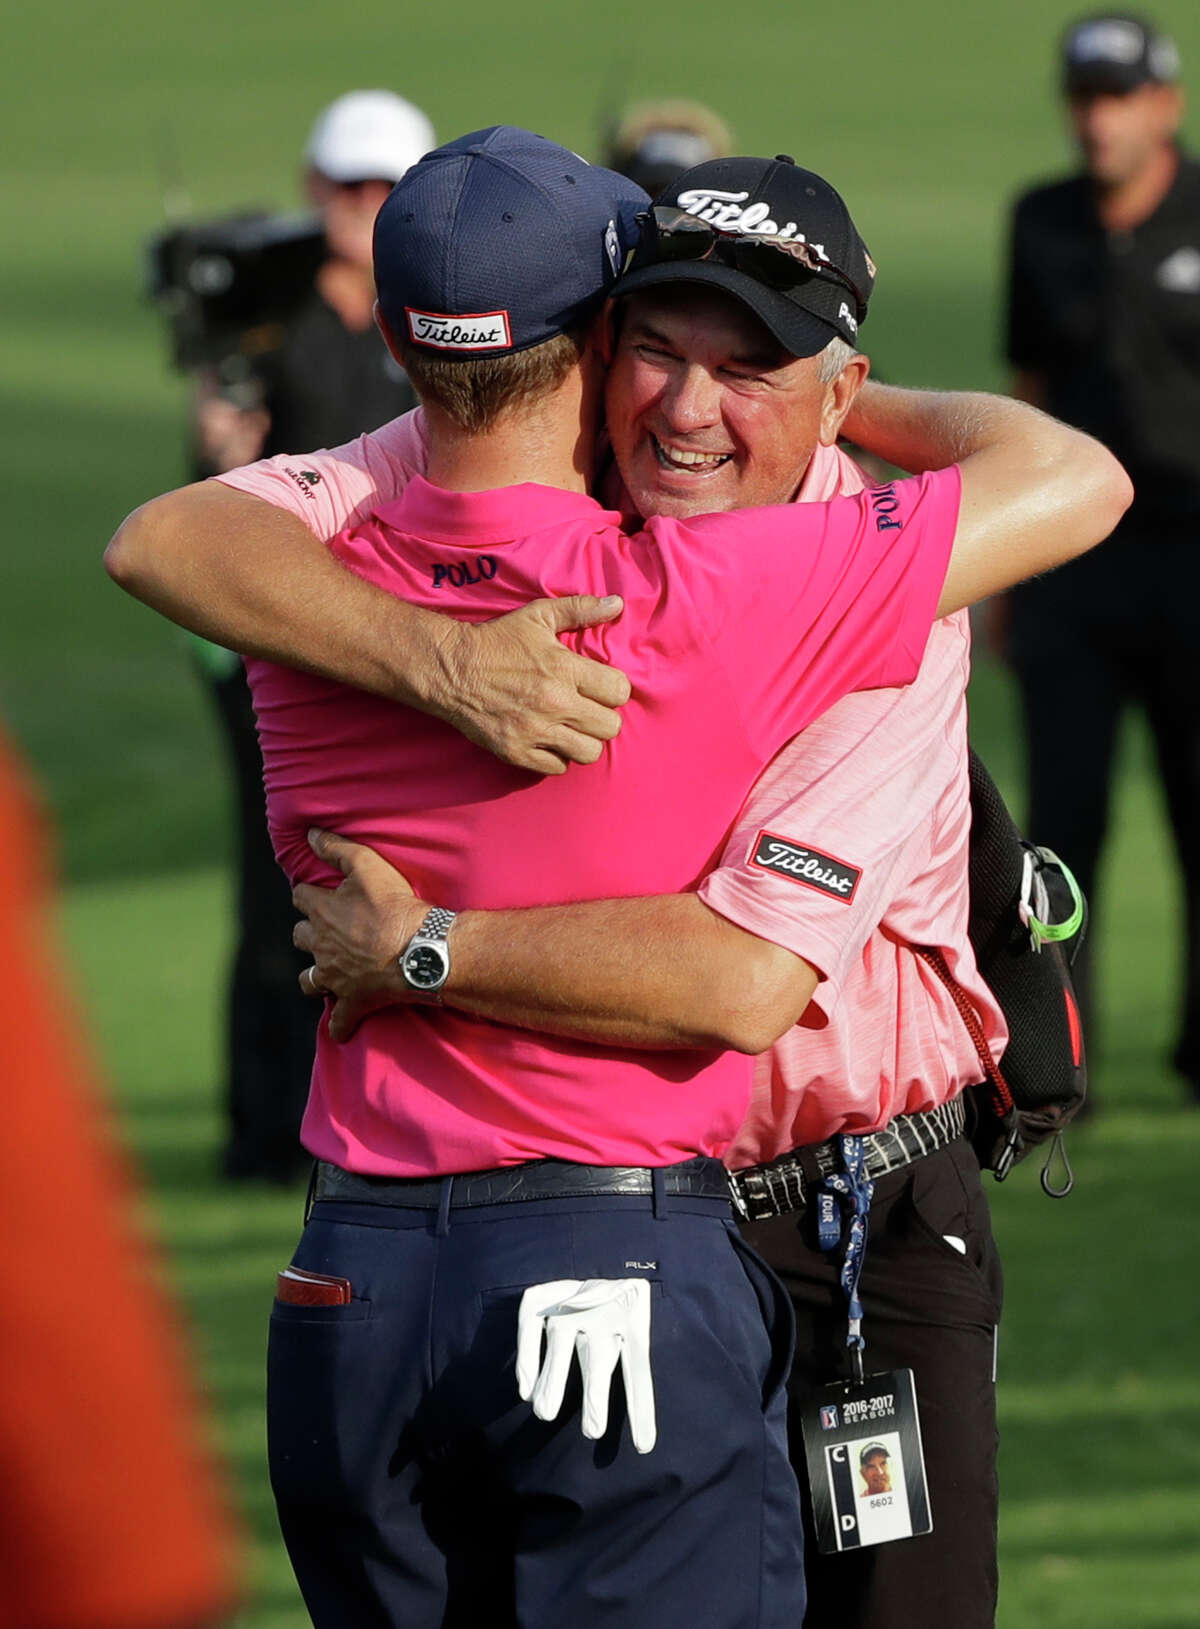 Justin Thomas, left, hugs his dad Mike after the final round of the PGA Championship golf tournament at the Quail Hollow Club Sunday, Aug. 13, 2017, in Charlotte, N.C. (AP Photo/John Bazemore) ORG XMIT: PGA191